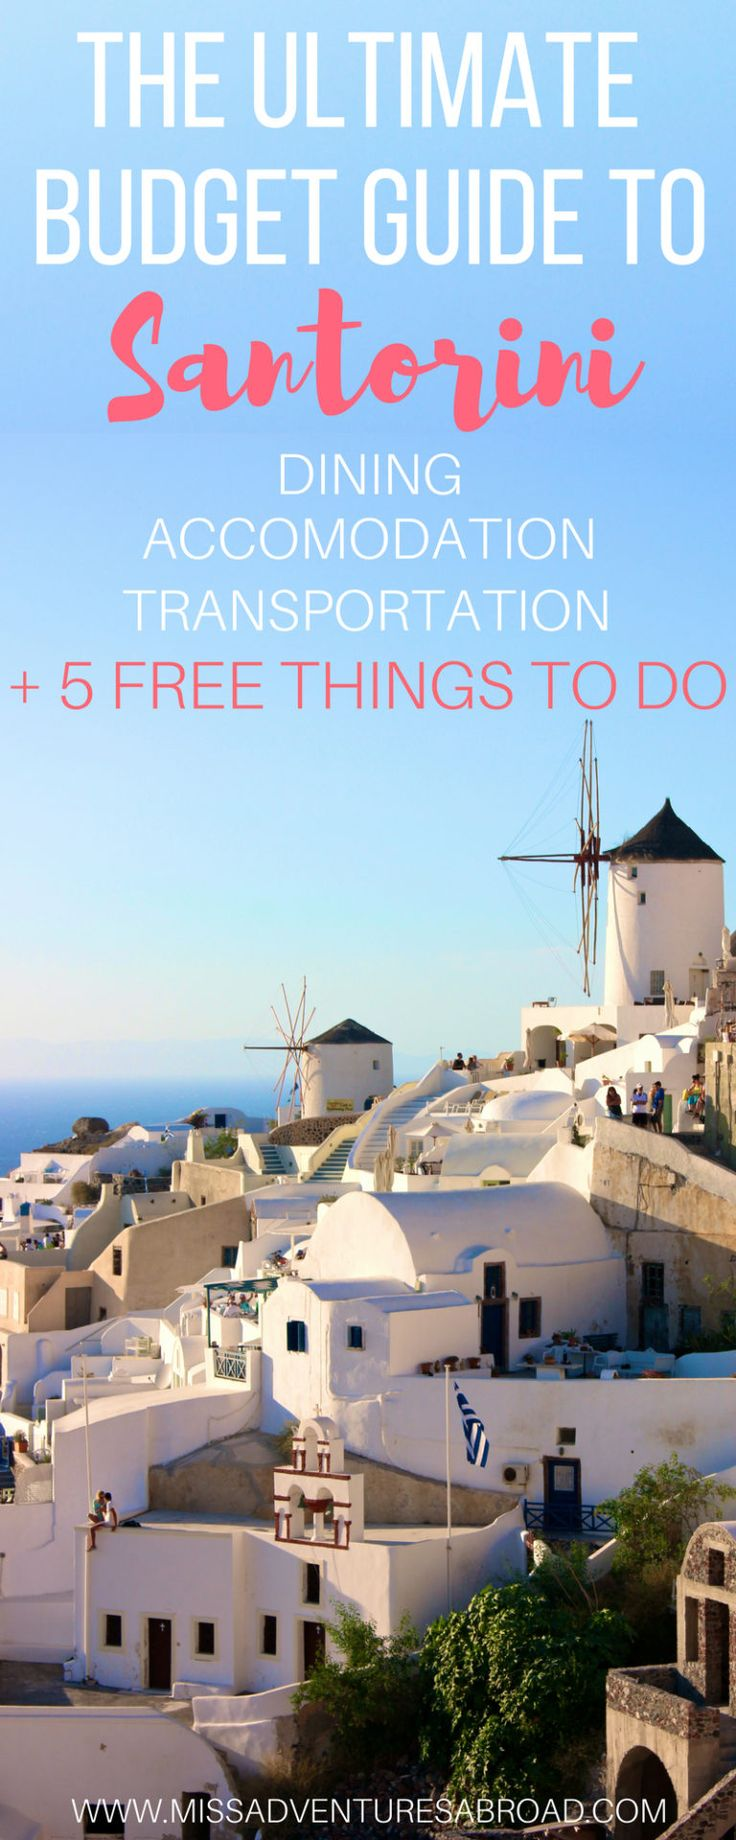 the-ultimate-budget-guide-to-santorini